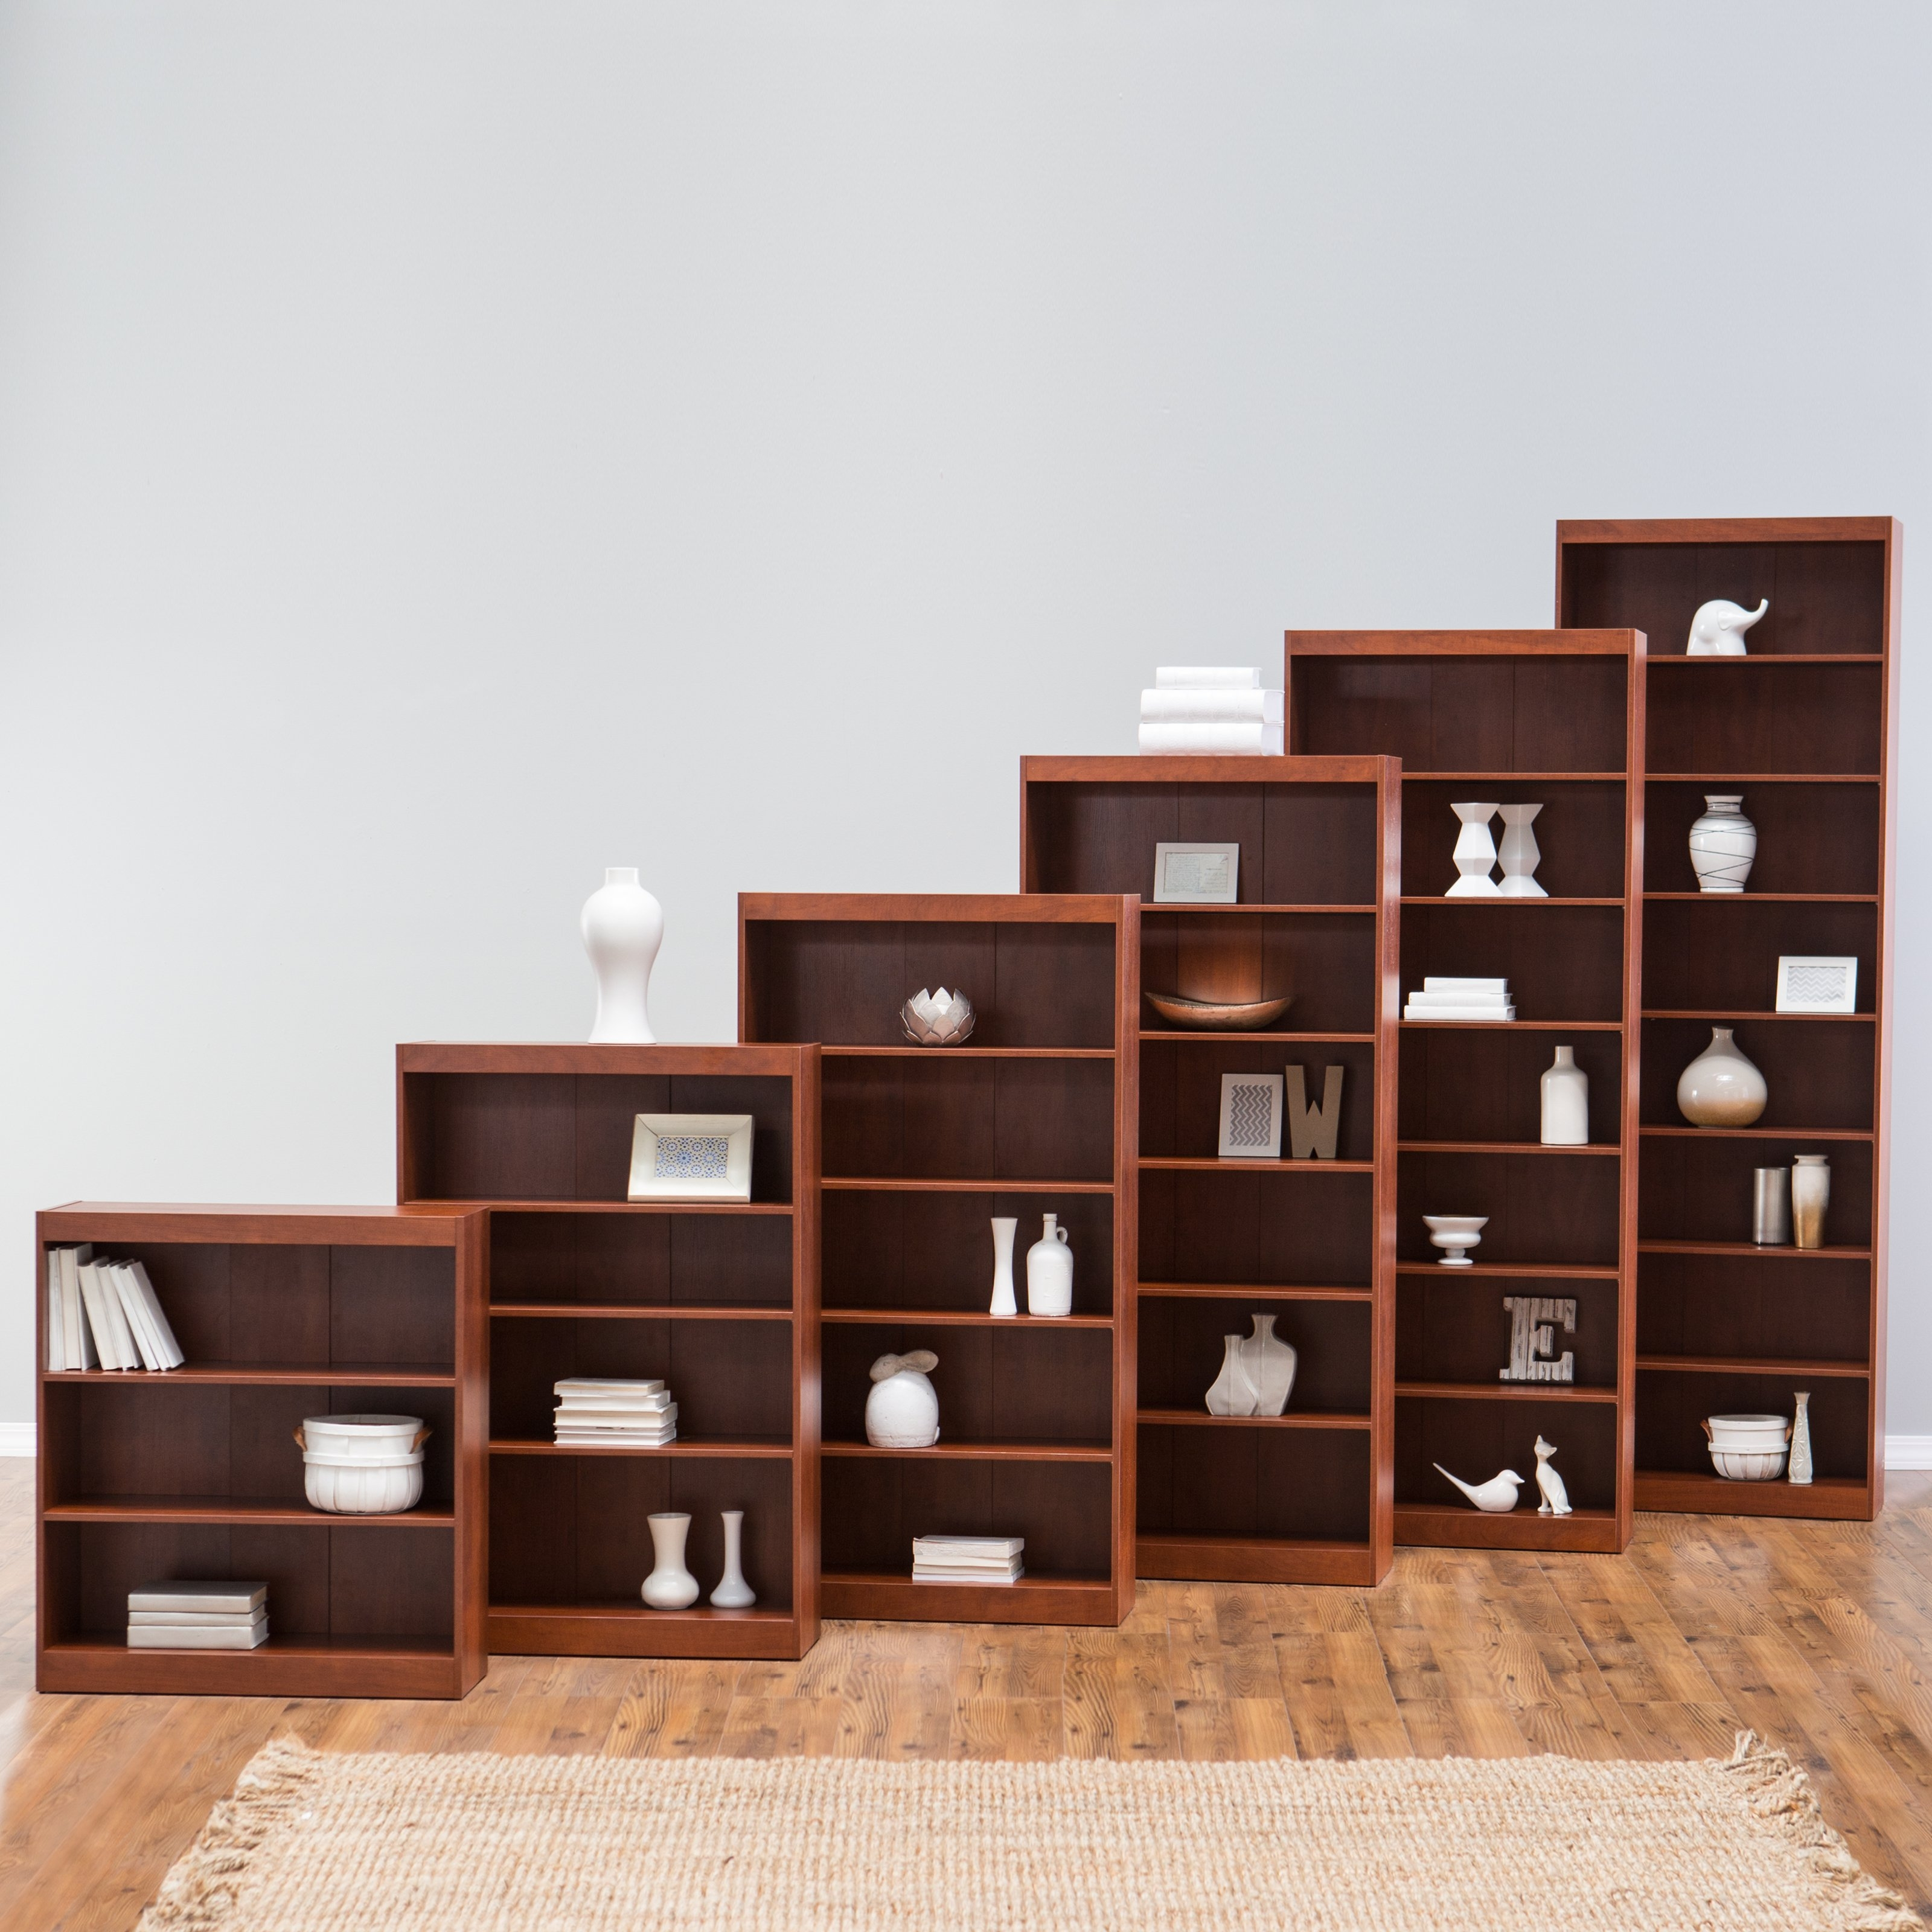 Remmington Heavy Duty Bookcase White Bookcases At Hayneedle Regarding High Quality Bookcases (View 14 of 15)